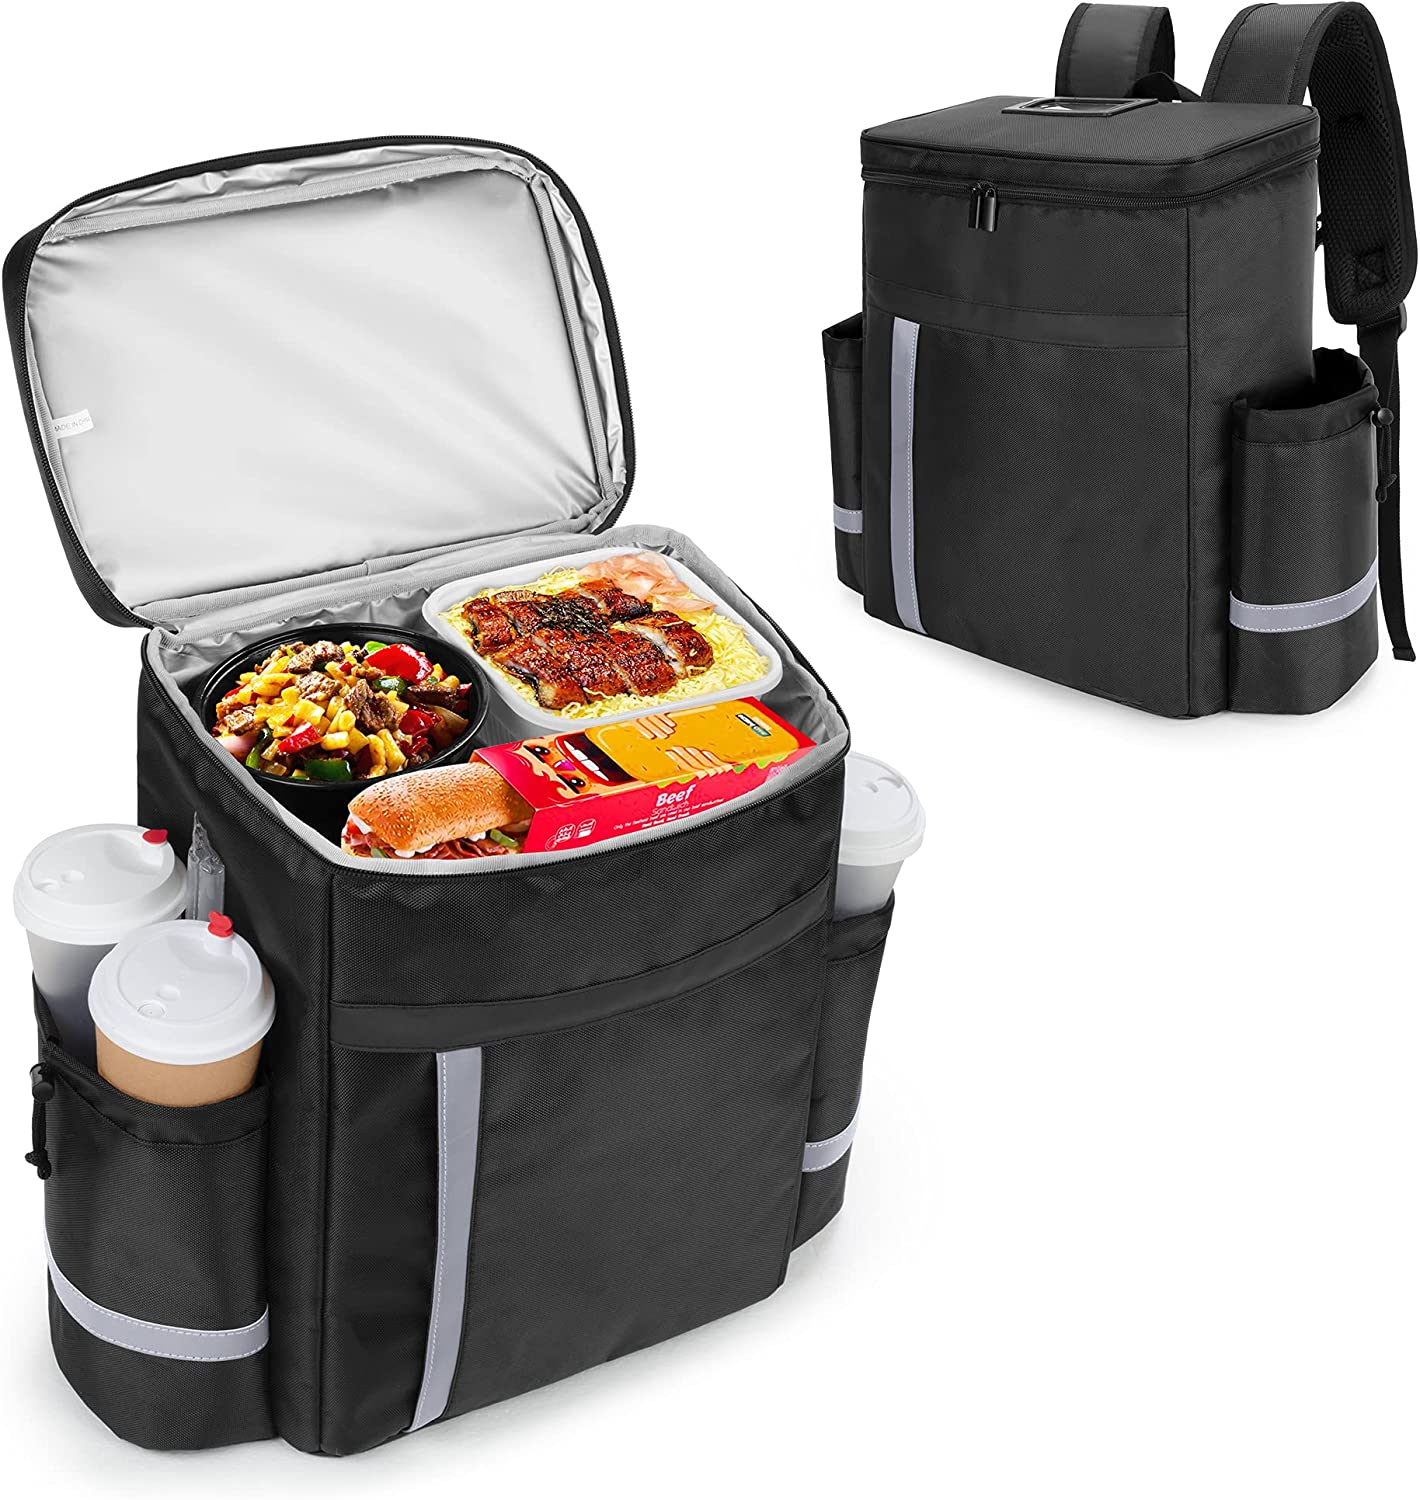 Trunab Insulated Food Delivery Backpack with Side Cup Holders, Leak-Proof Reusable Cooler Bag for Bike Delivery, Uber Eats, Doordash, Beach, Camping, Picnics